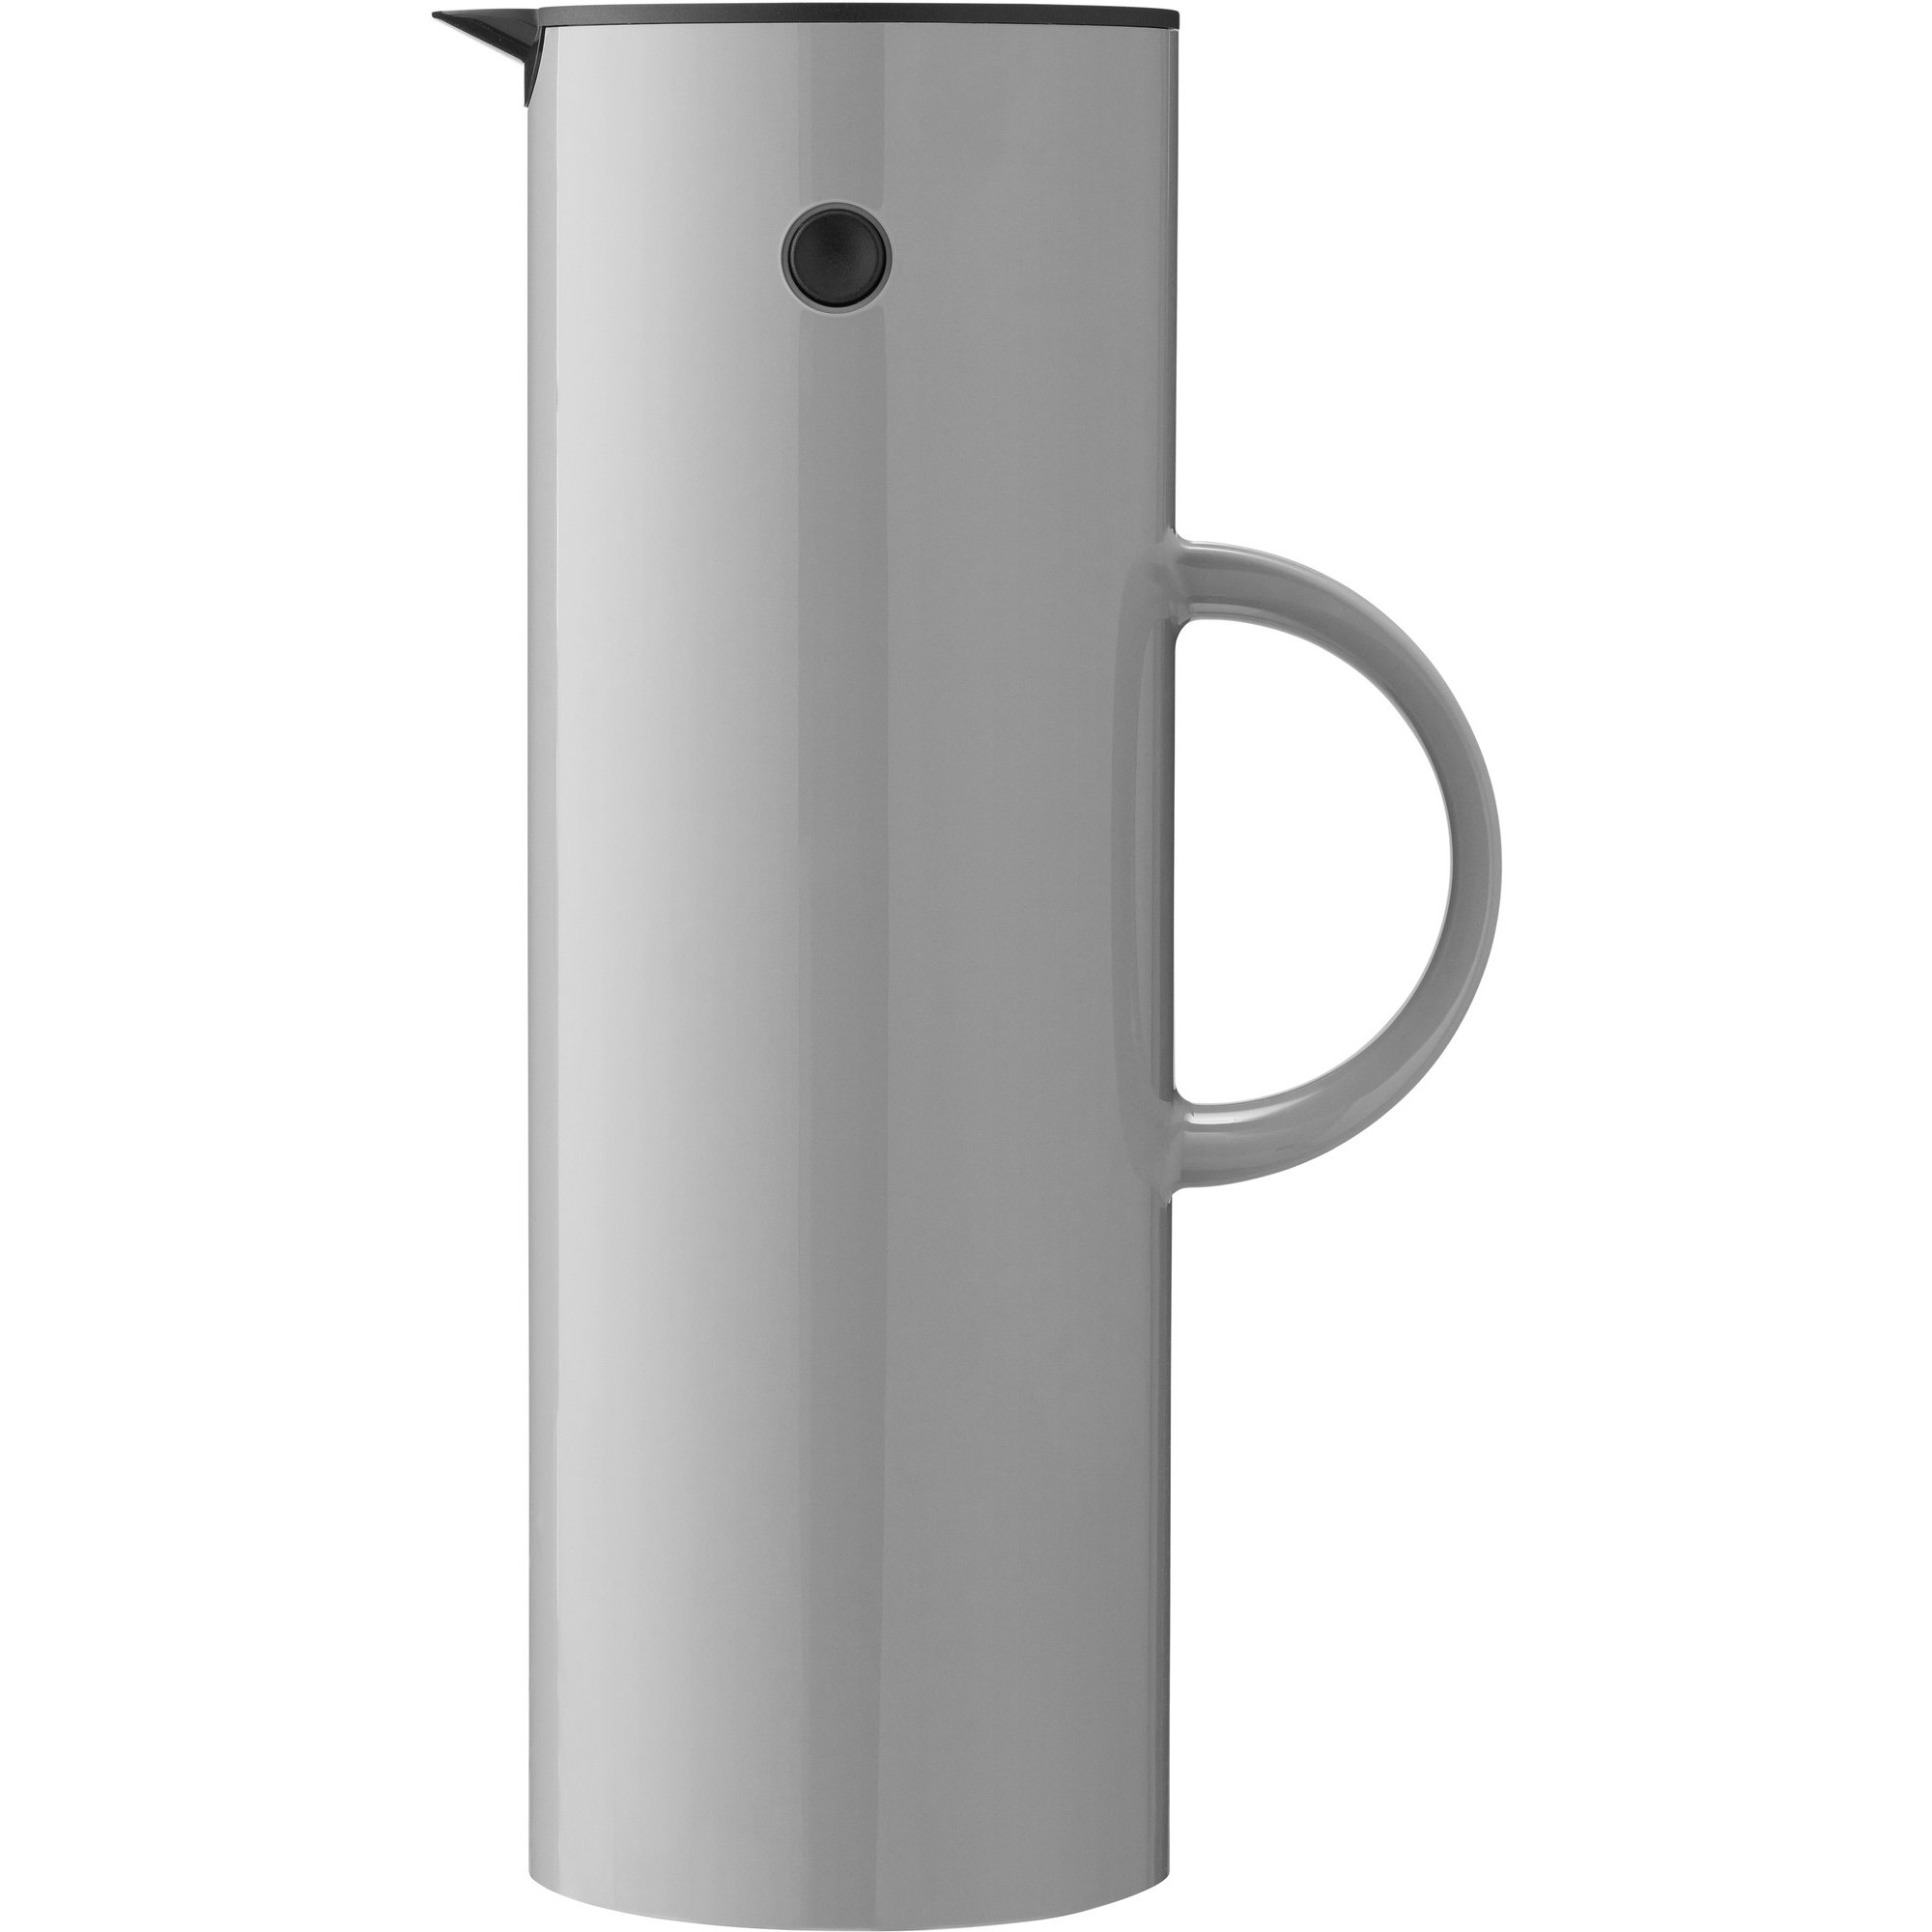 Stelton EM77 termoskanna 1 liter – light grey